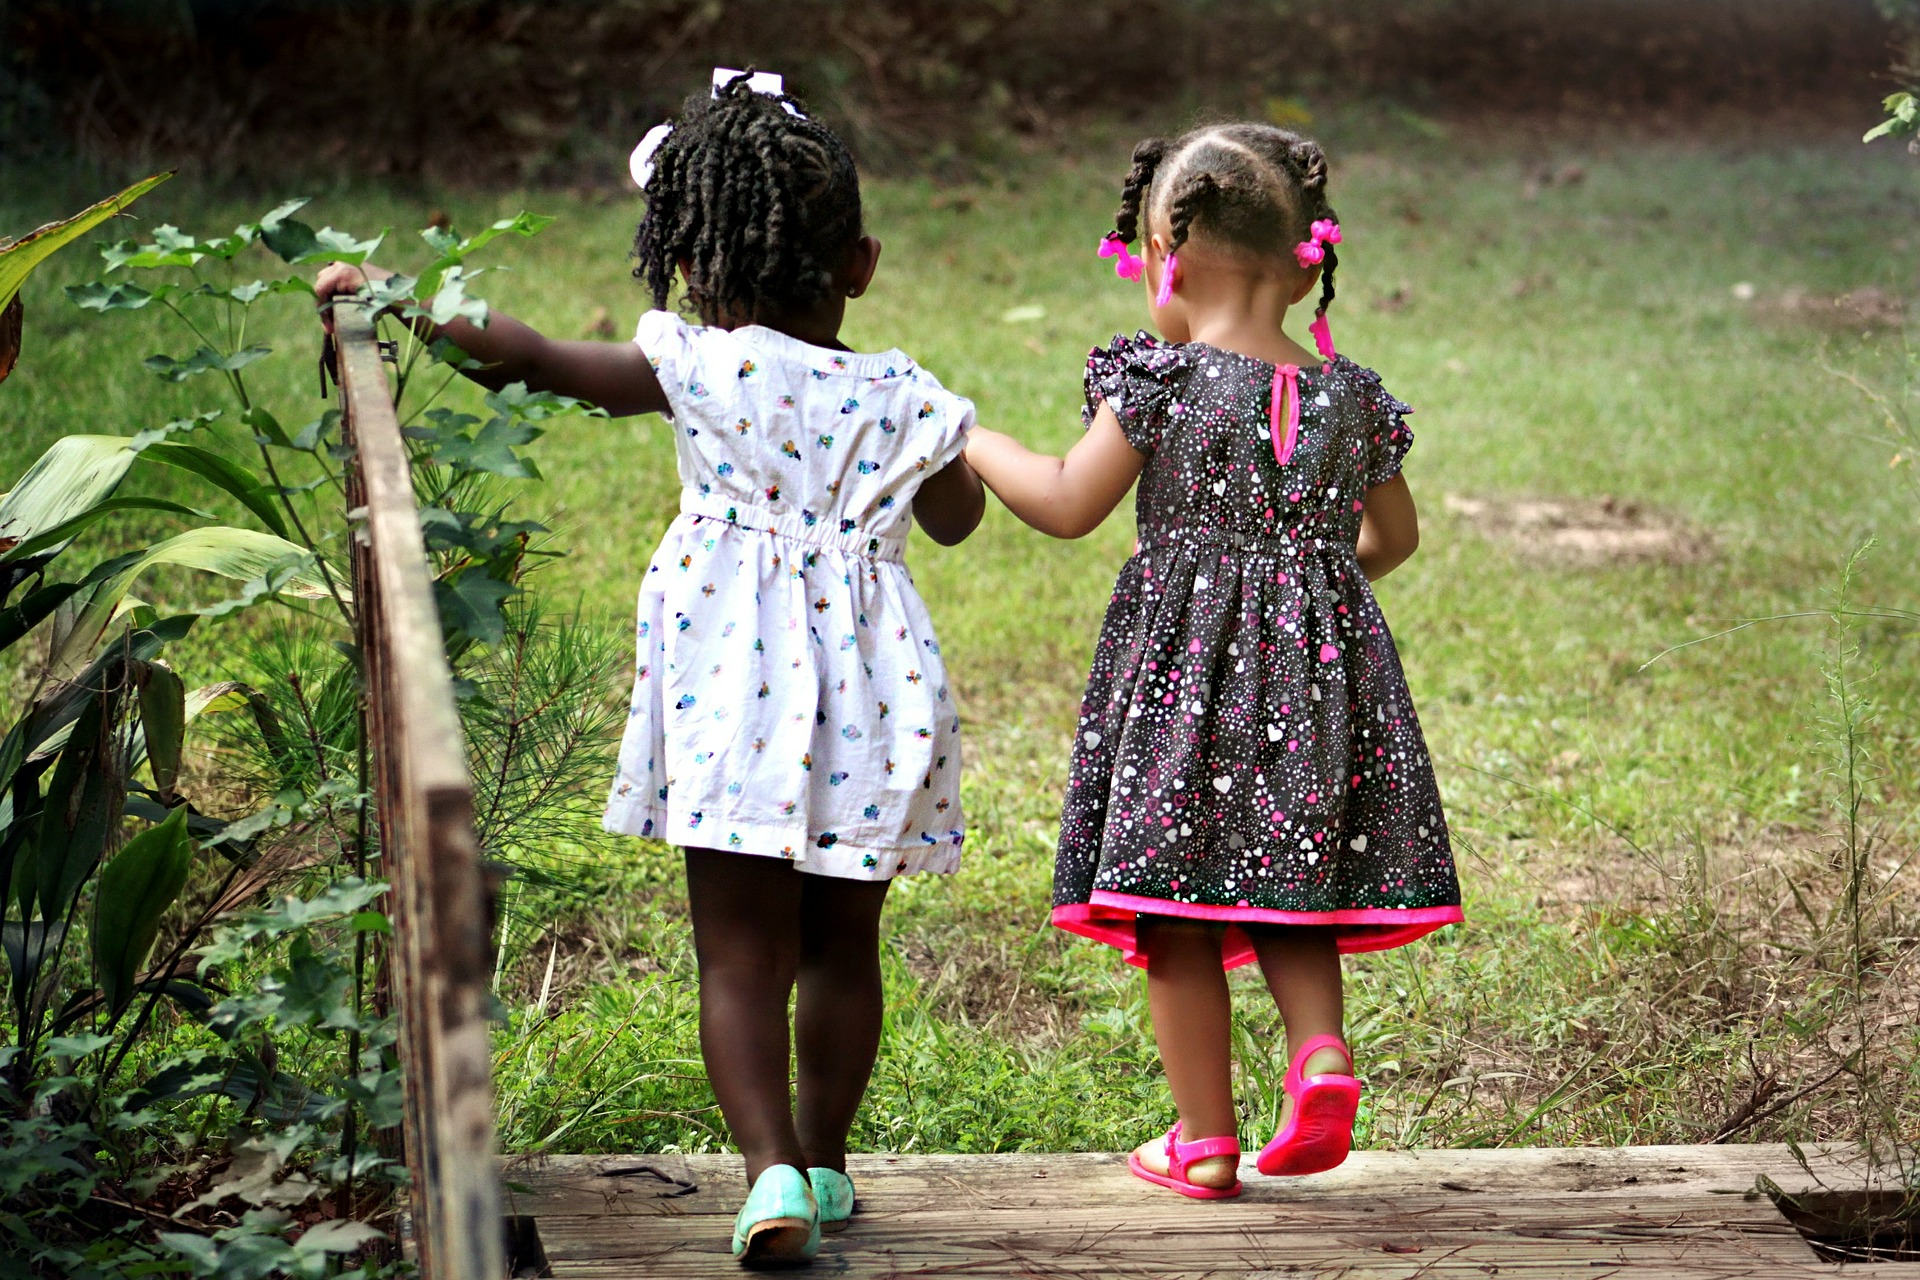 Two little girls, wearing ribbons in their braided hair and summer dresses, are holding hands and stepping off the end of a wooden bridge into a green field